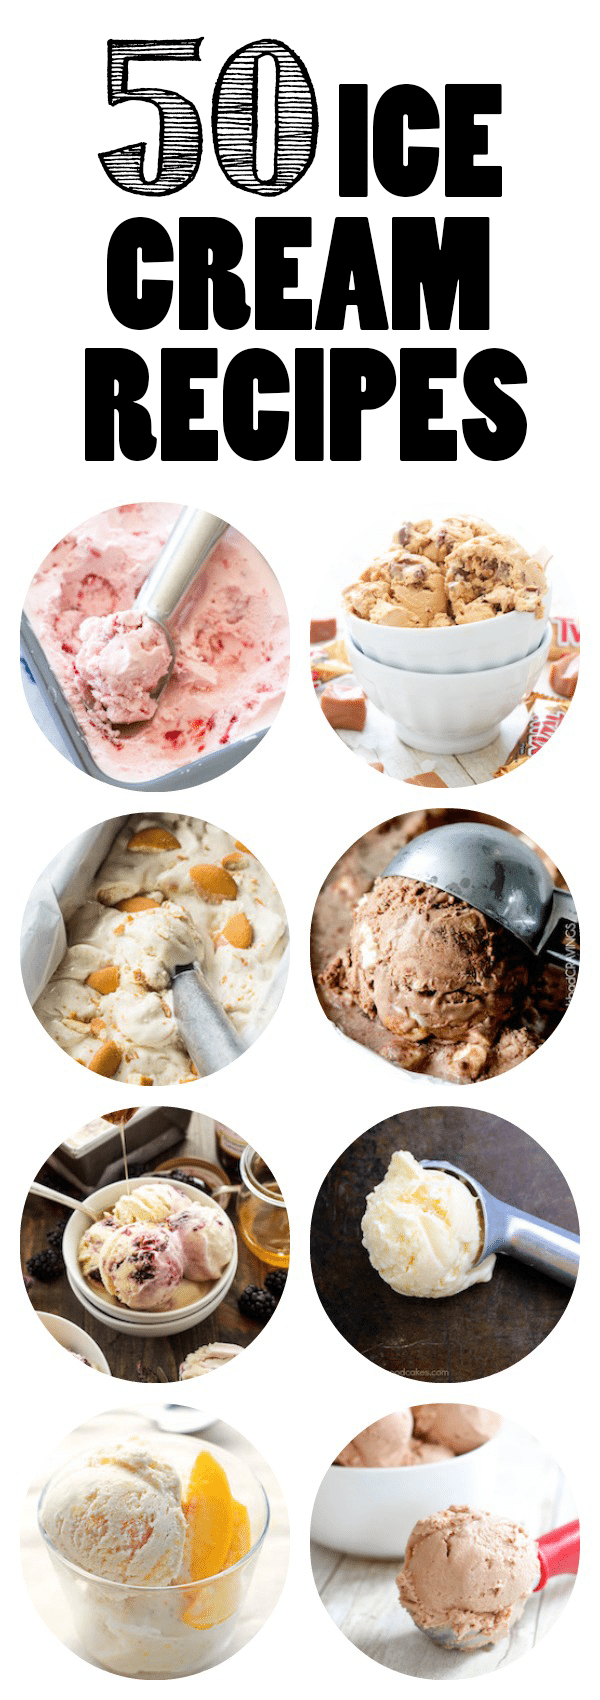 50 Ice Cream Recipes - Every one of these is an ice cream recipe that I want to try! All from such awesome bloggers.